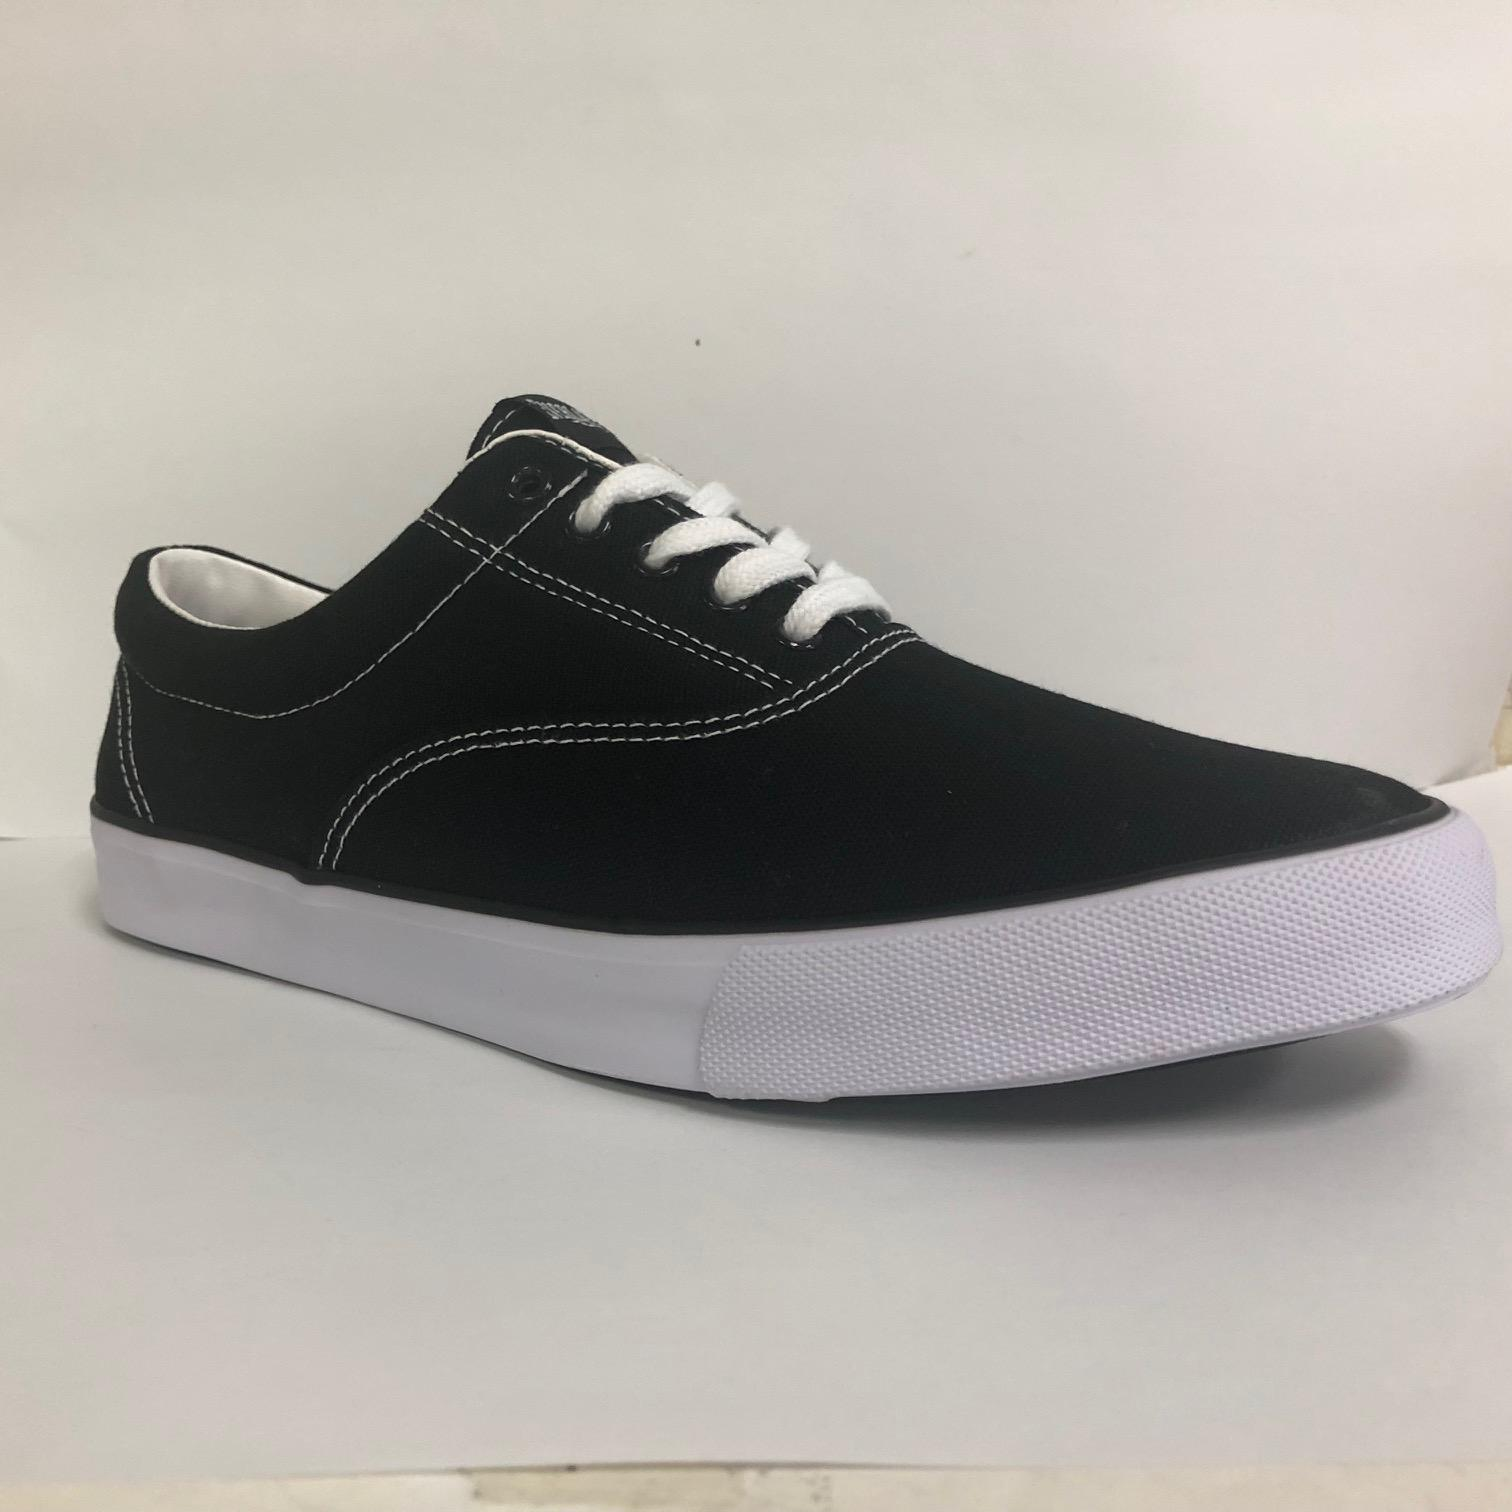 Everlast Cvo Canvas Shoes By Everlast Singapore.